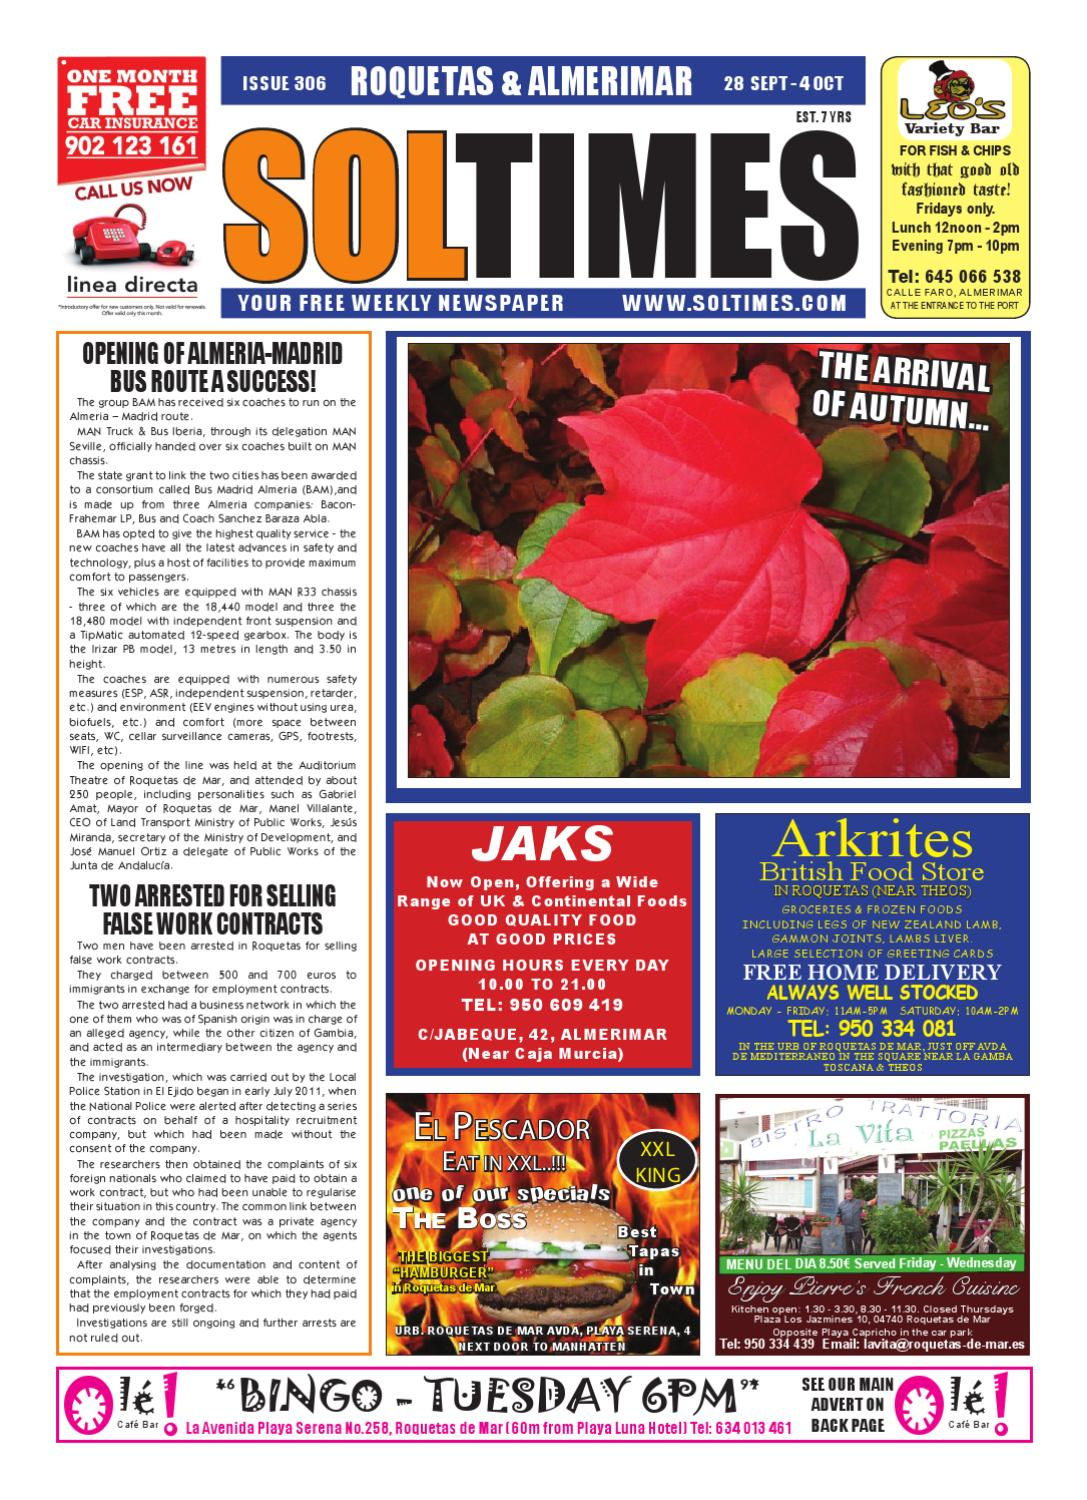 Xxl Sessel Roqu Sol Times Newspaper Issue 306 Roquetas Edition